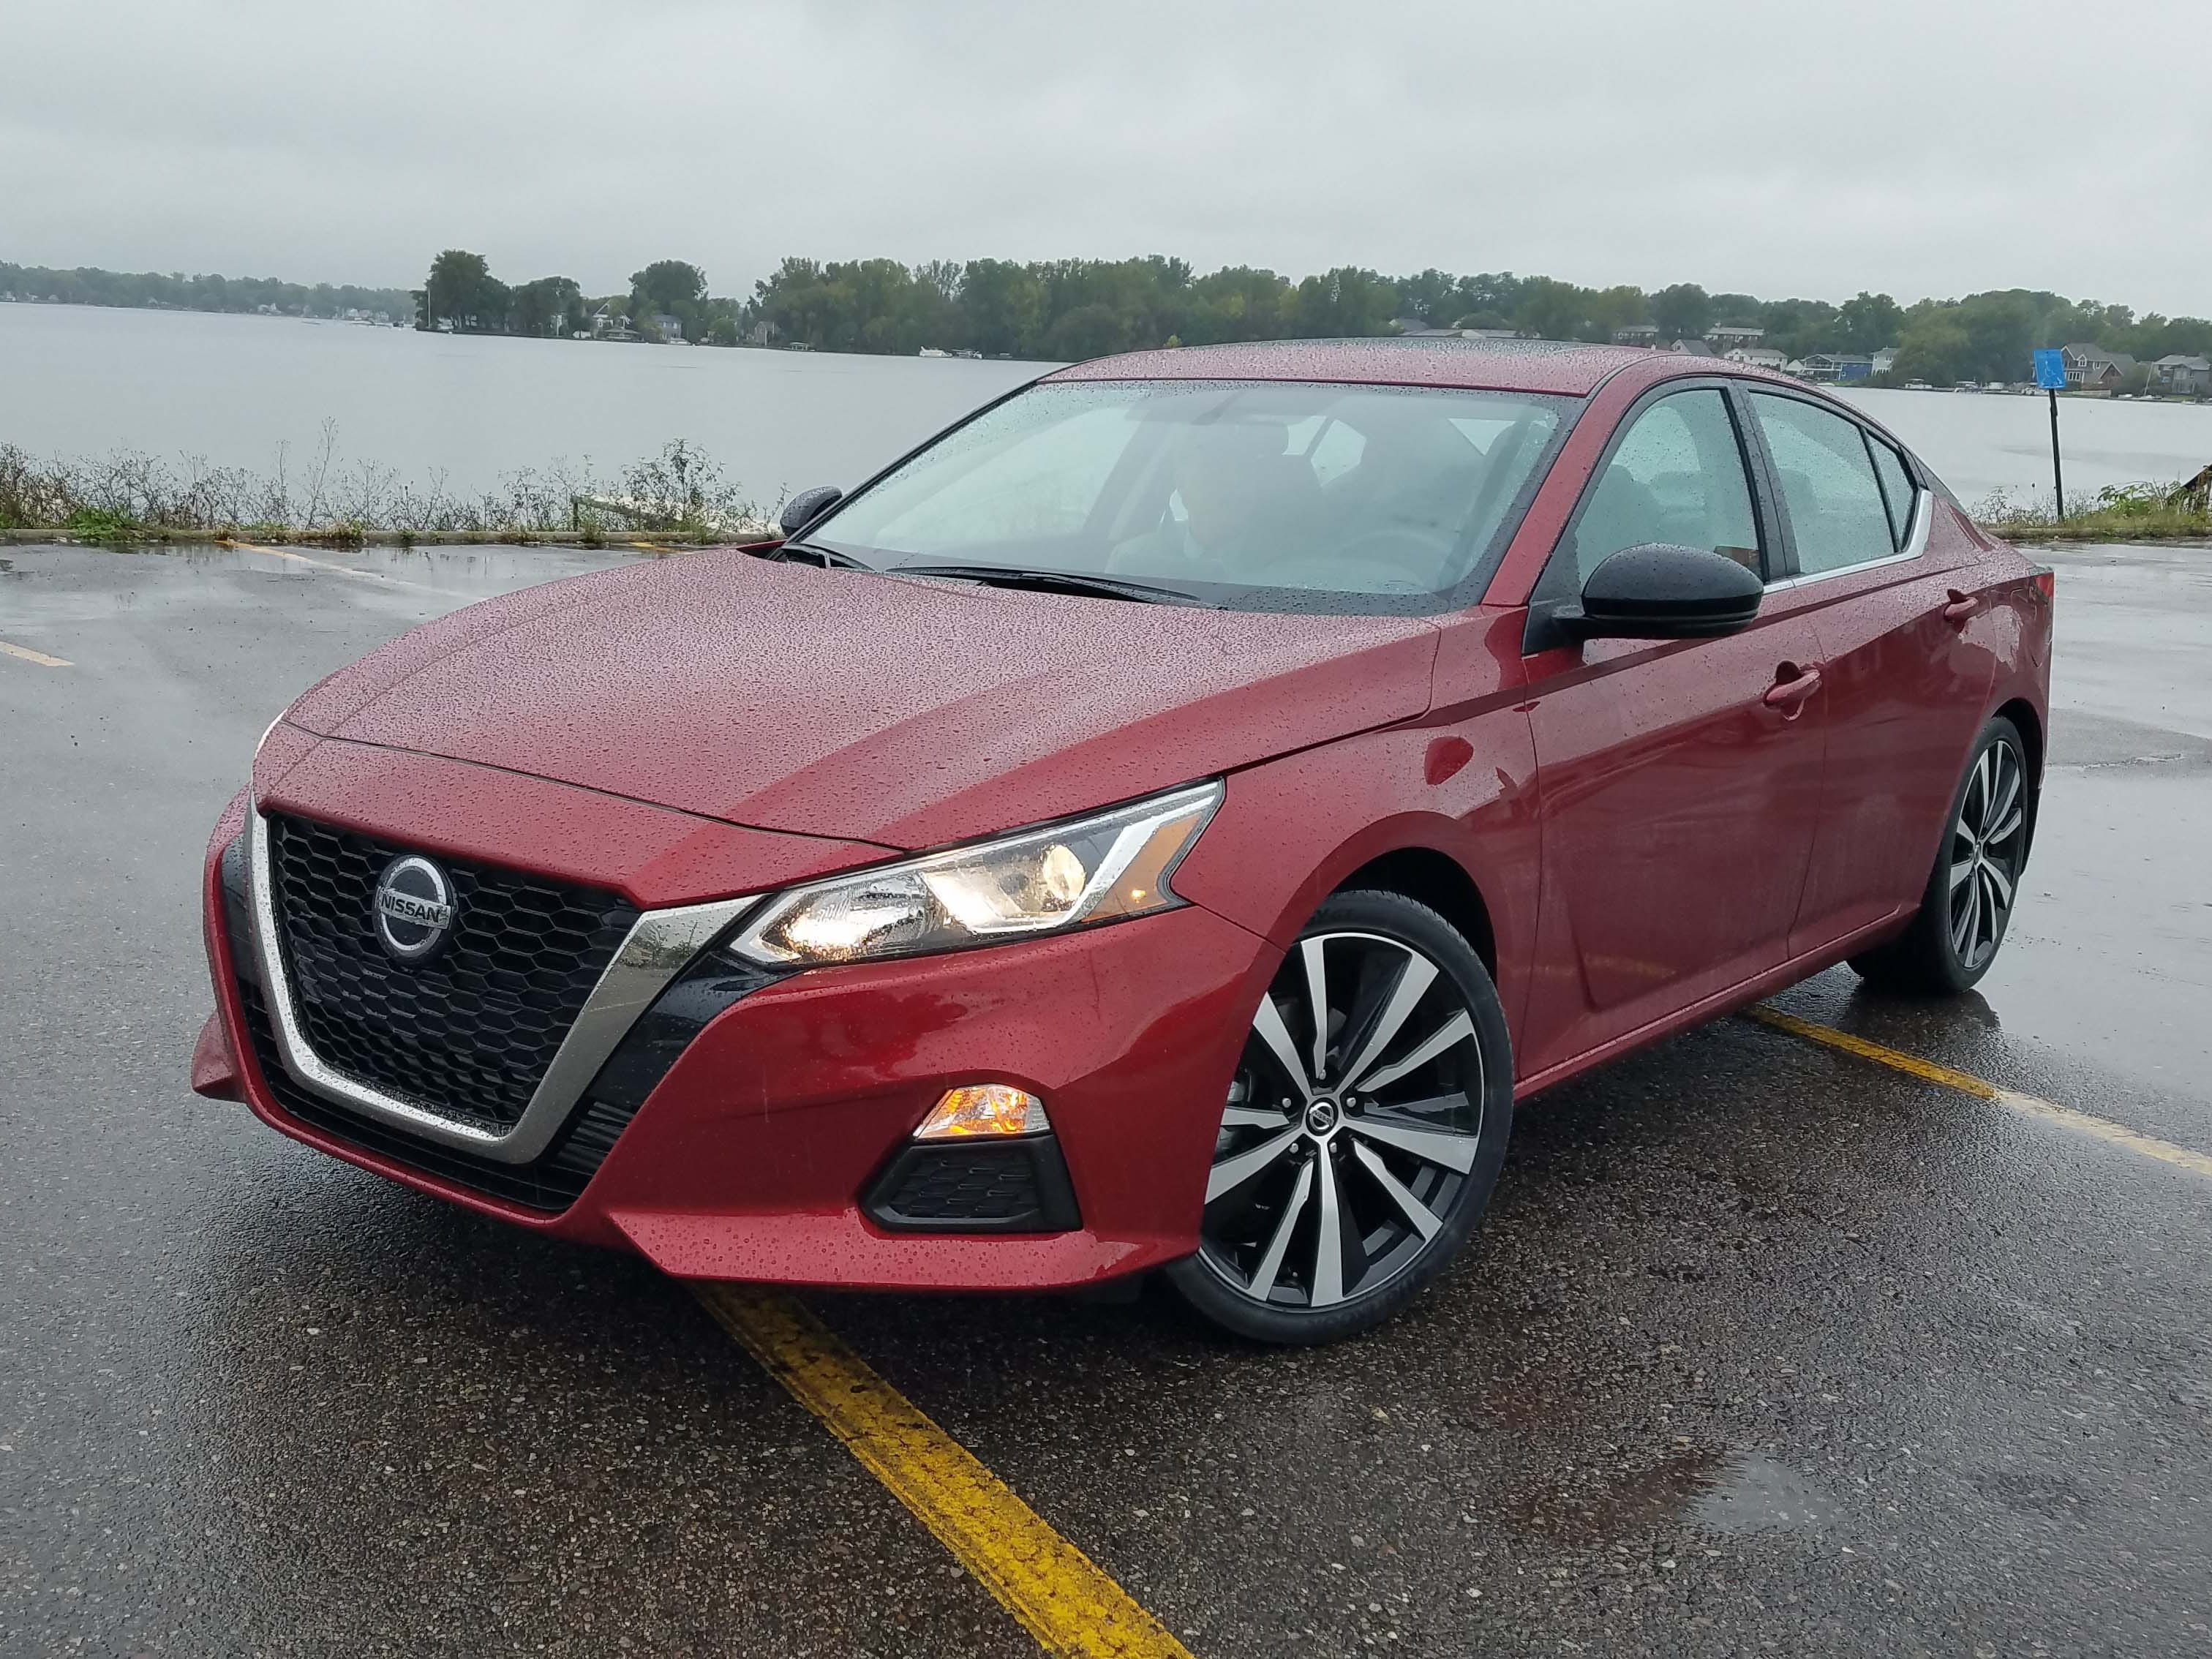 The 2019 Altima is the rare midsize sedan that comes with all-wheel-drive. Perfect for foul Michigan weather.